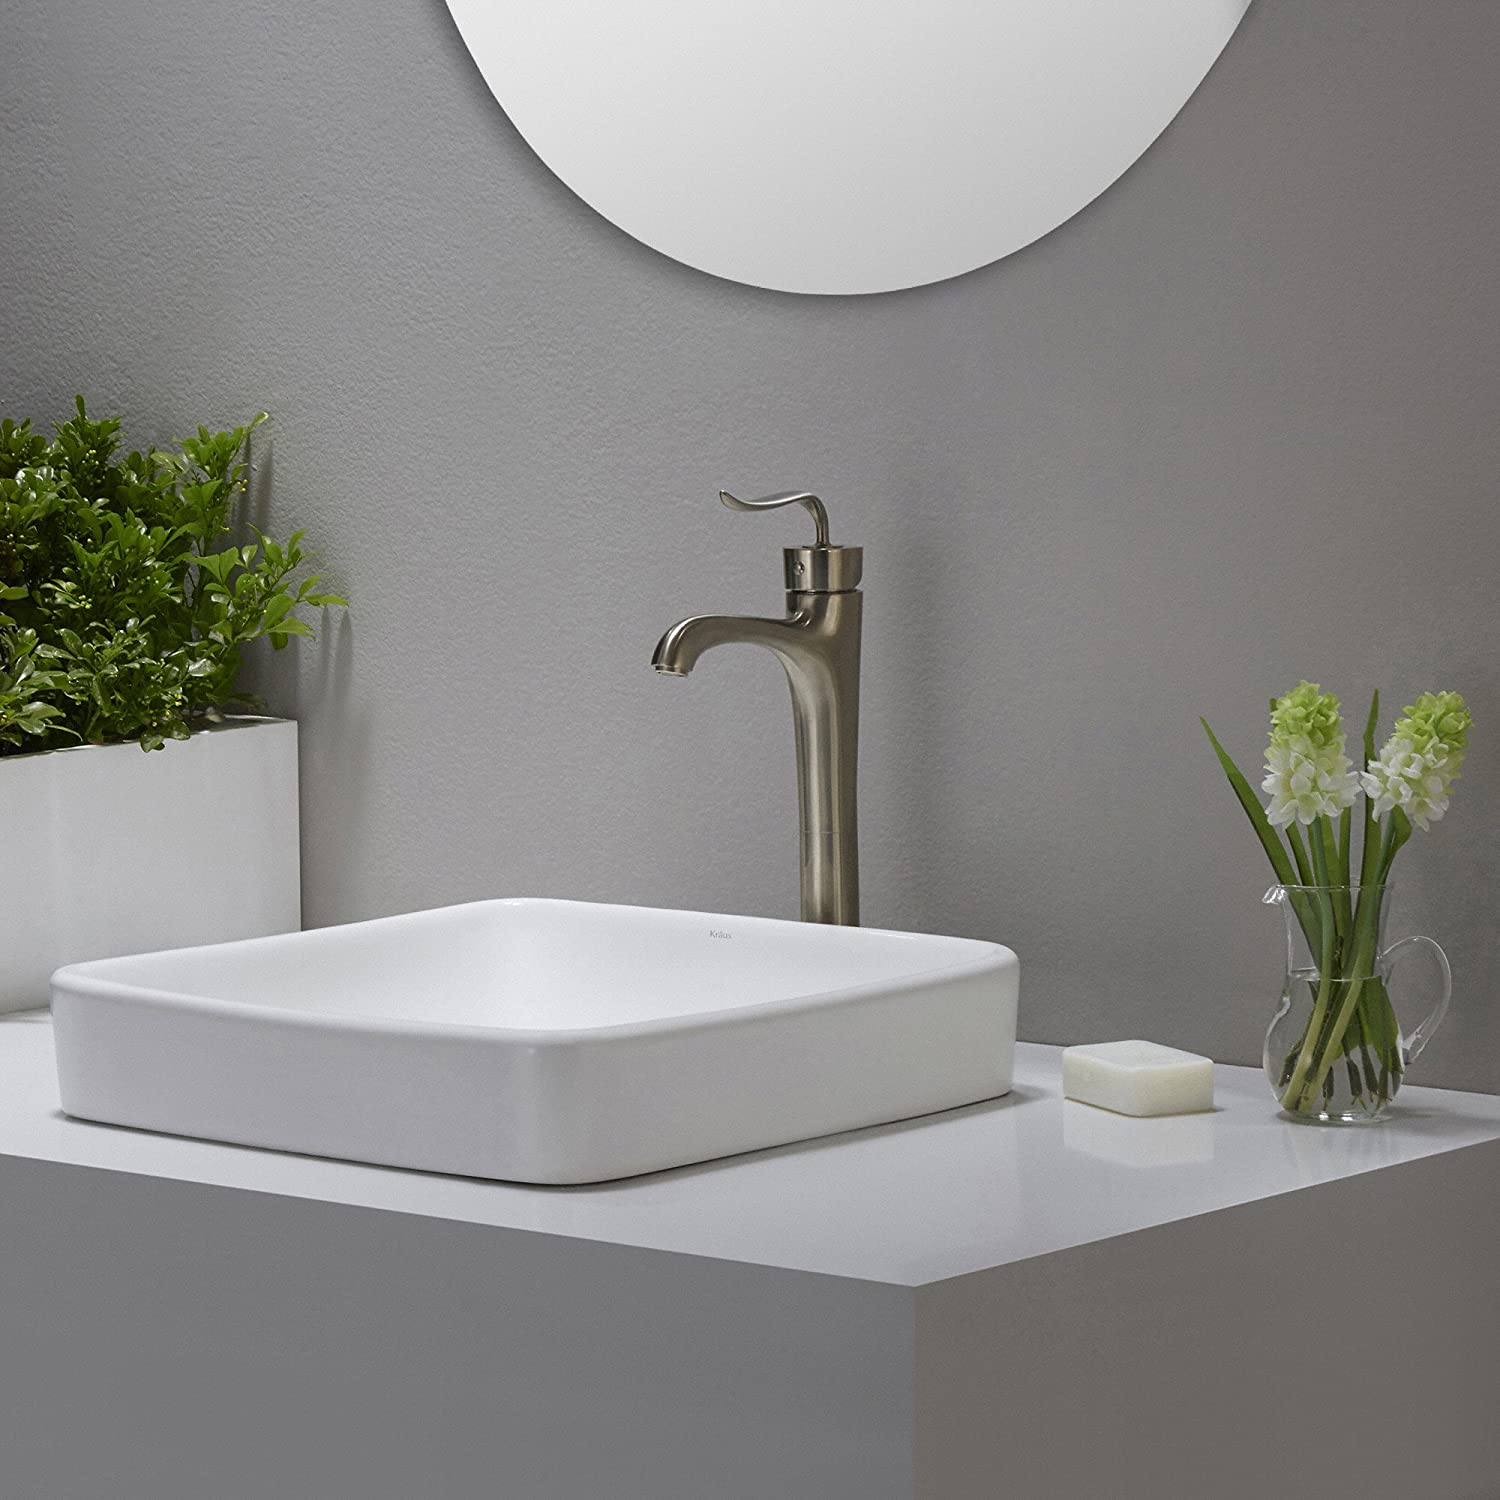 Kraus KCR 281 Modern Elavo Ceramic Square Semi Recessed Bathroom Sink With  Overflow, White     Amazon.com